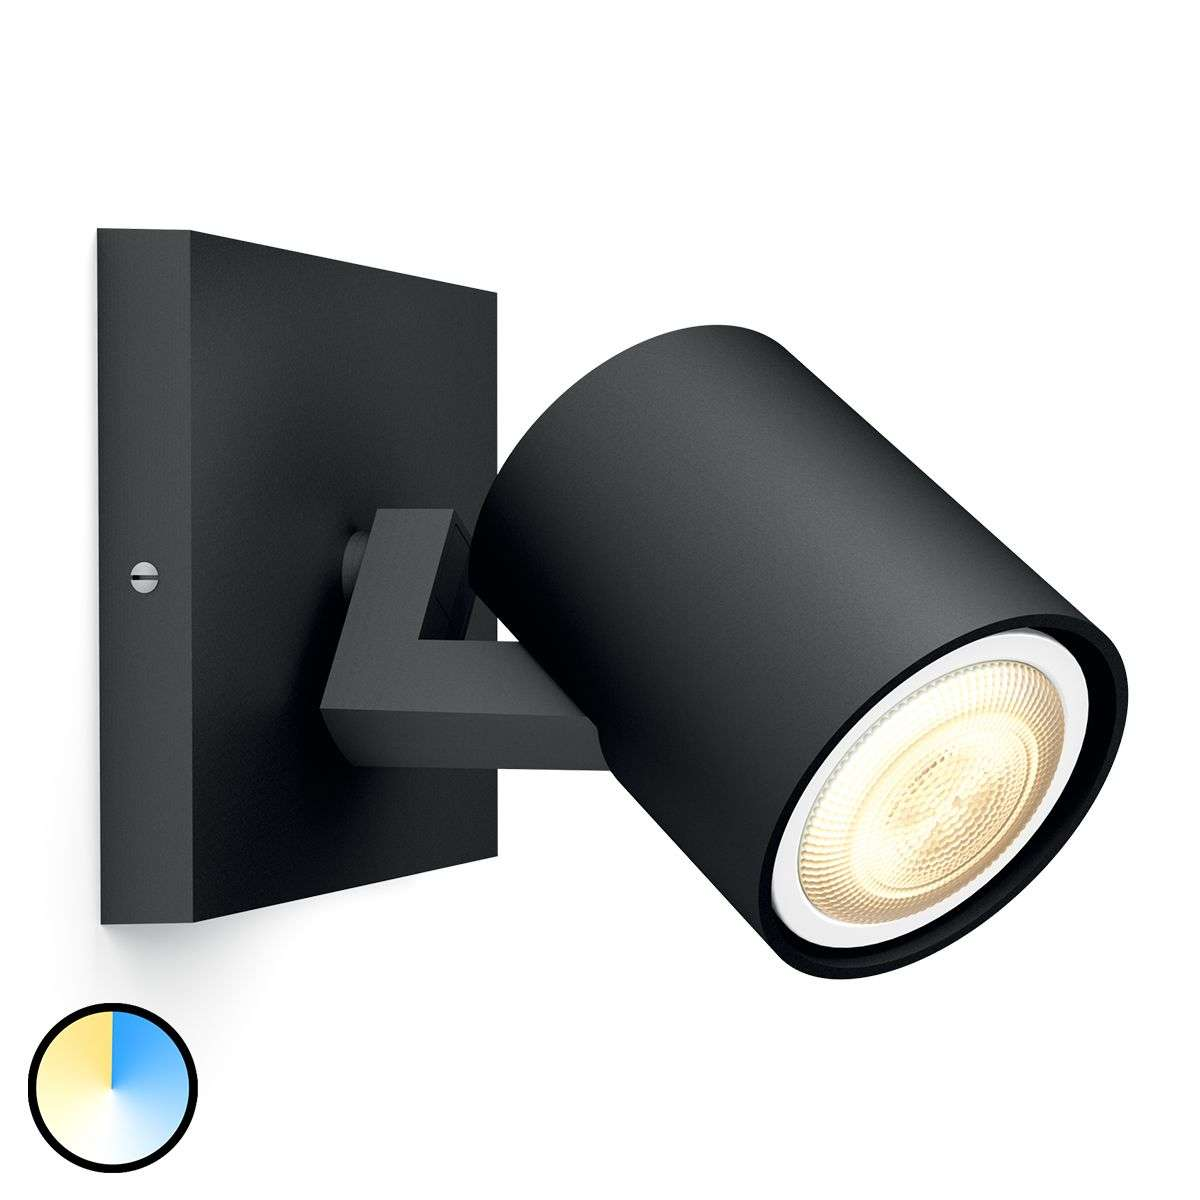 philips hue led spotlight runner. Black Bedroom Furniture Sets. Home Design Ideas